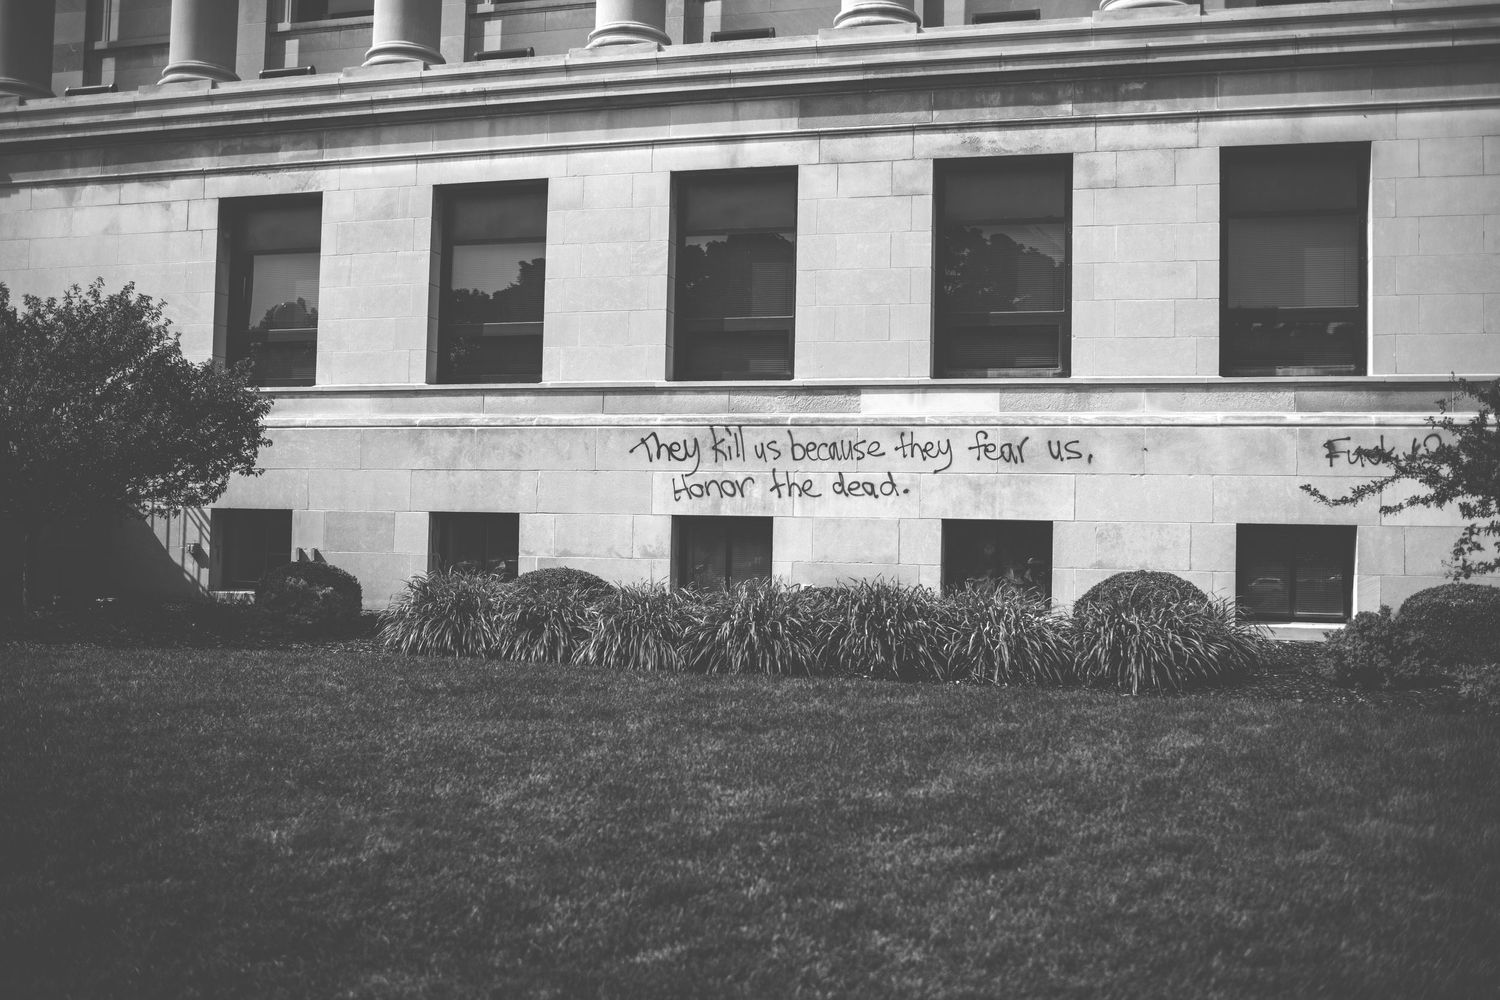 "In spray paint, ""They kill us because they fear us. Honor the dead."" is written on the Kenosha County Courthouse."